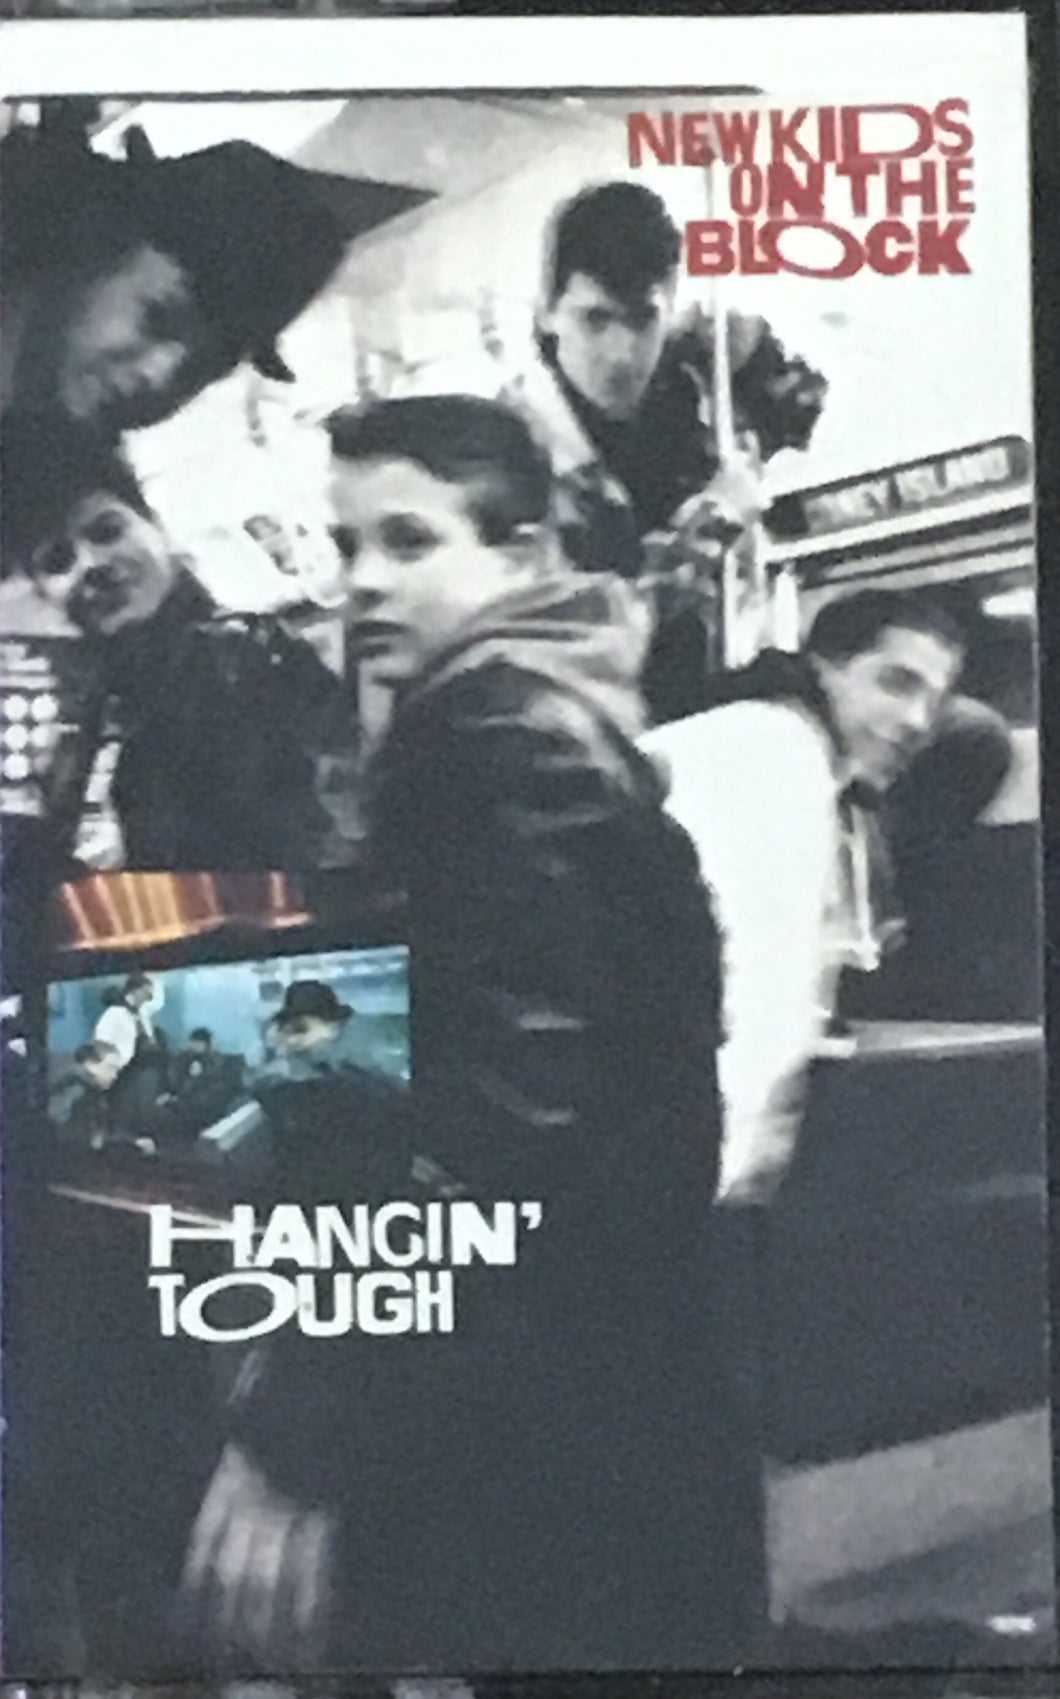 New Kids On The Block Hangin' Tough Cassette